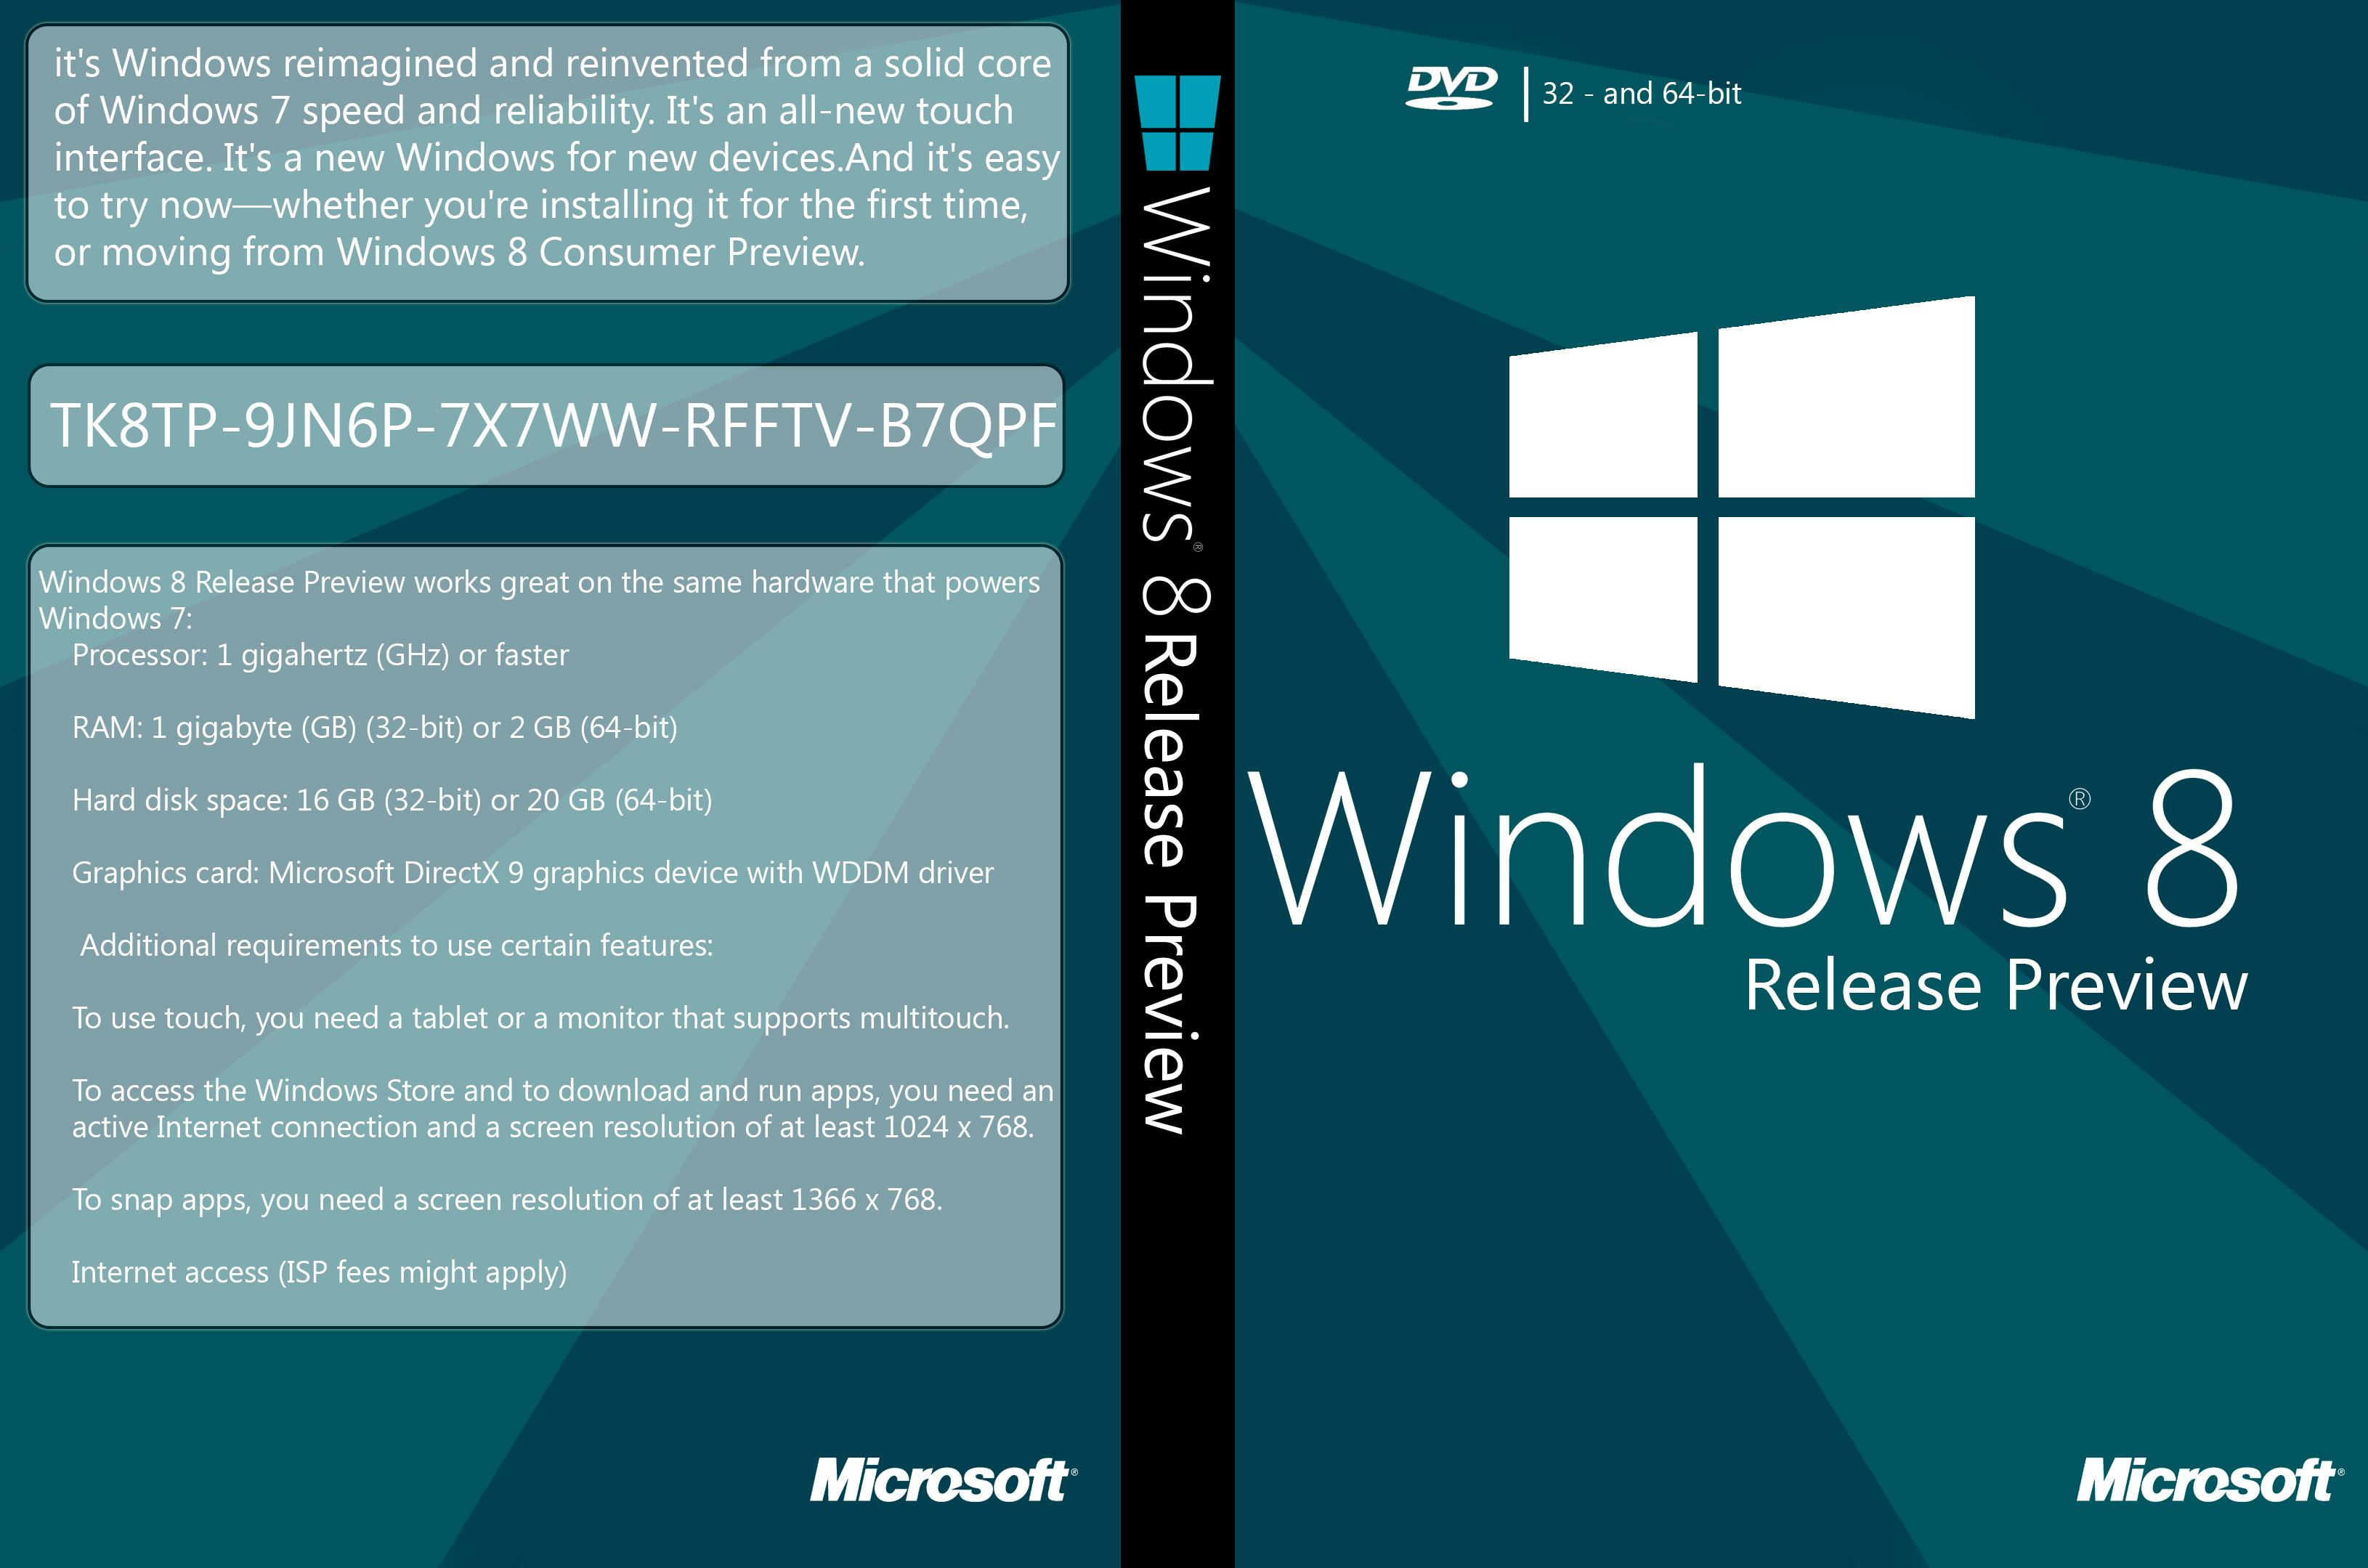 View topic windows beta dvd covers betaarchive for Windows windows